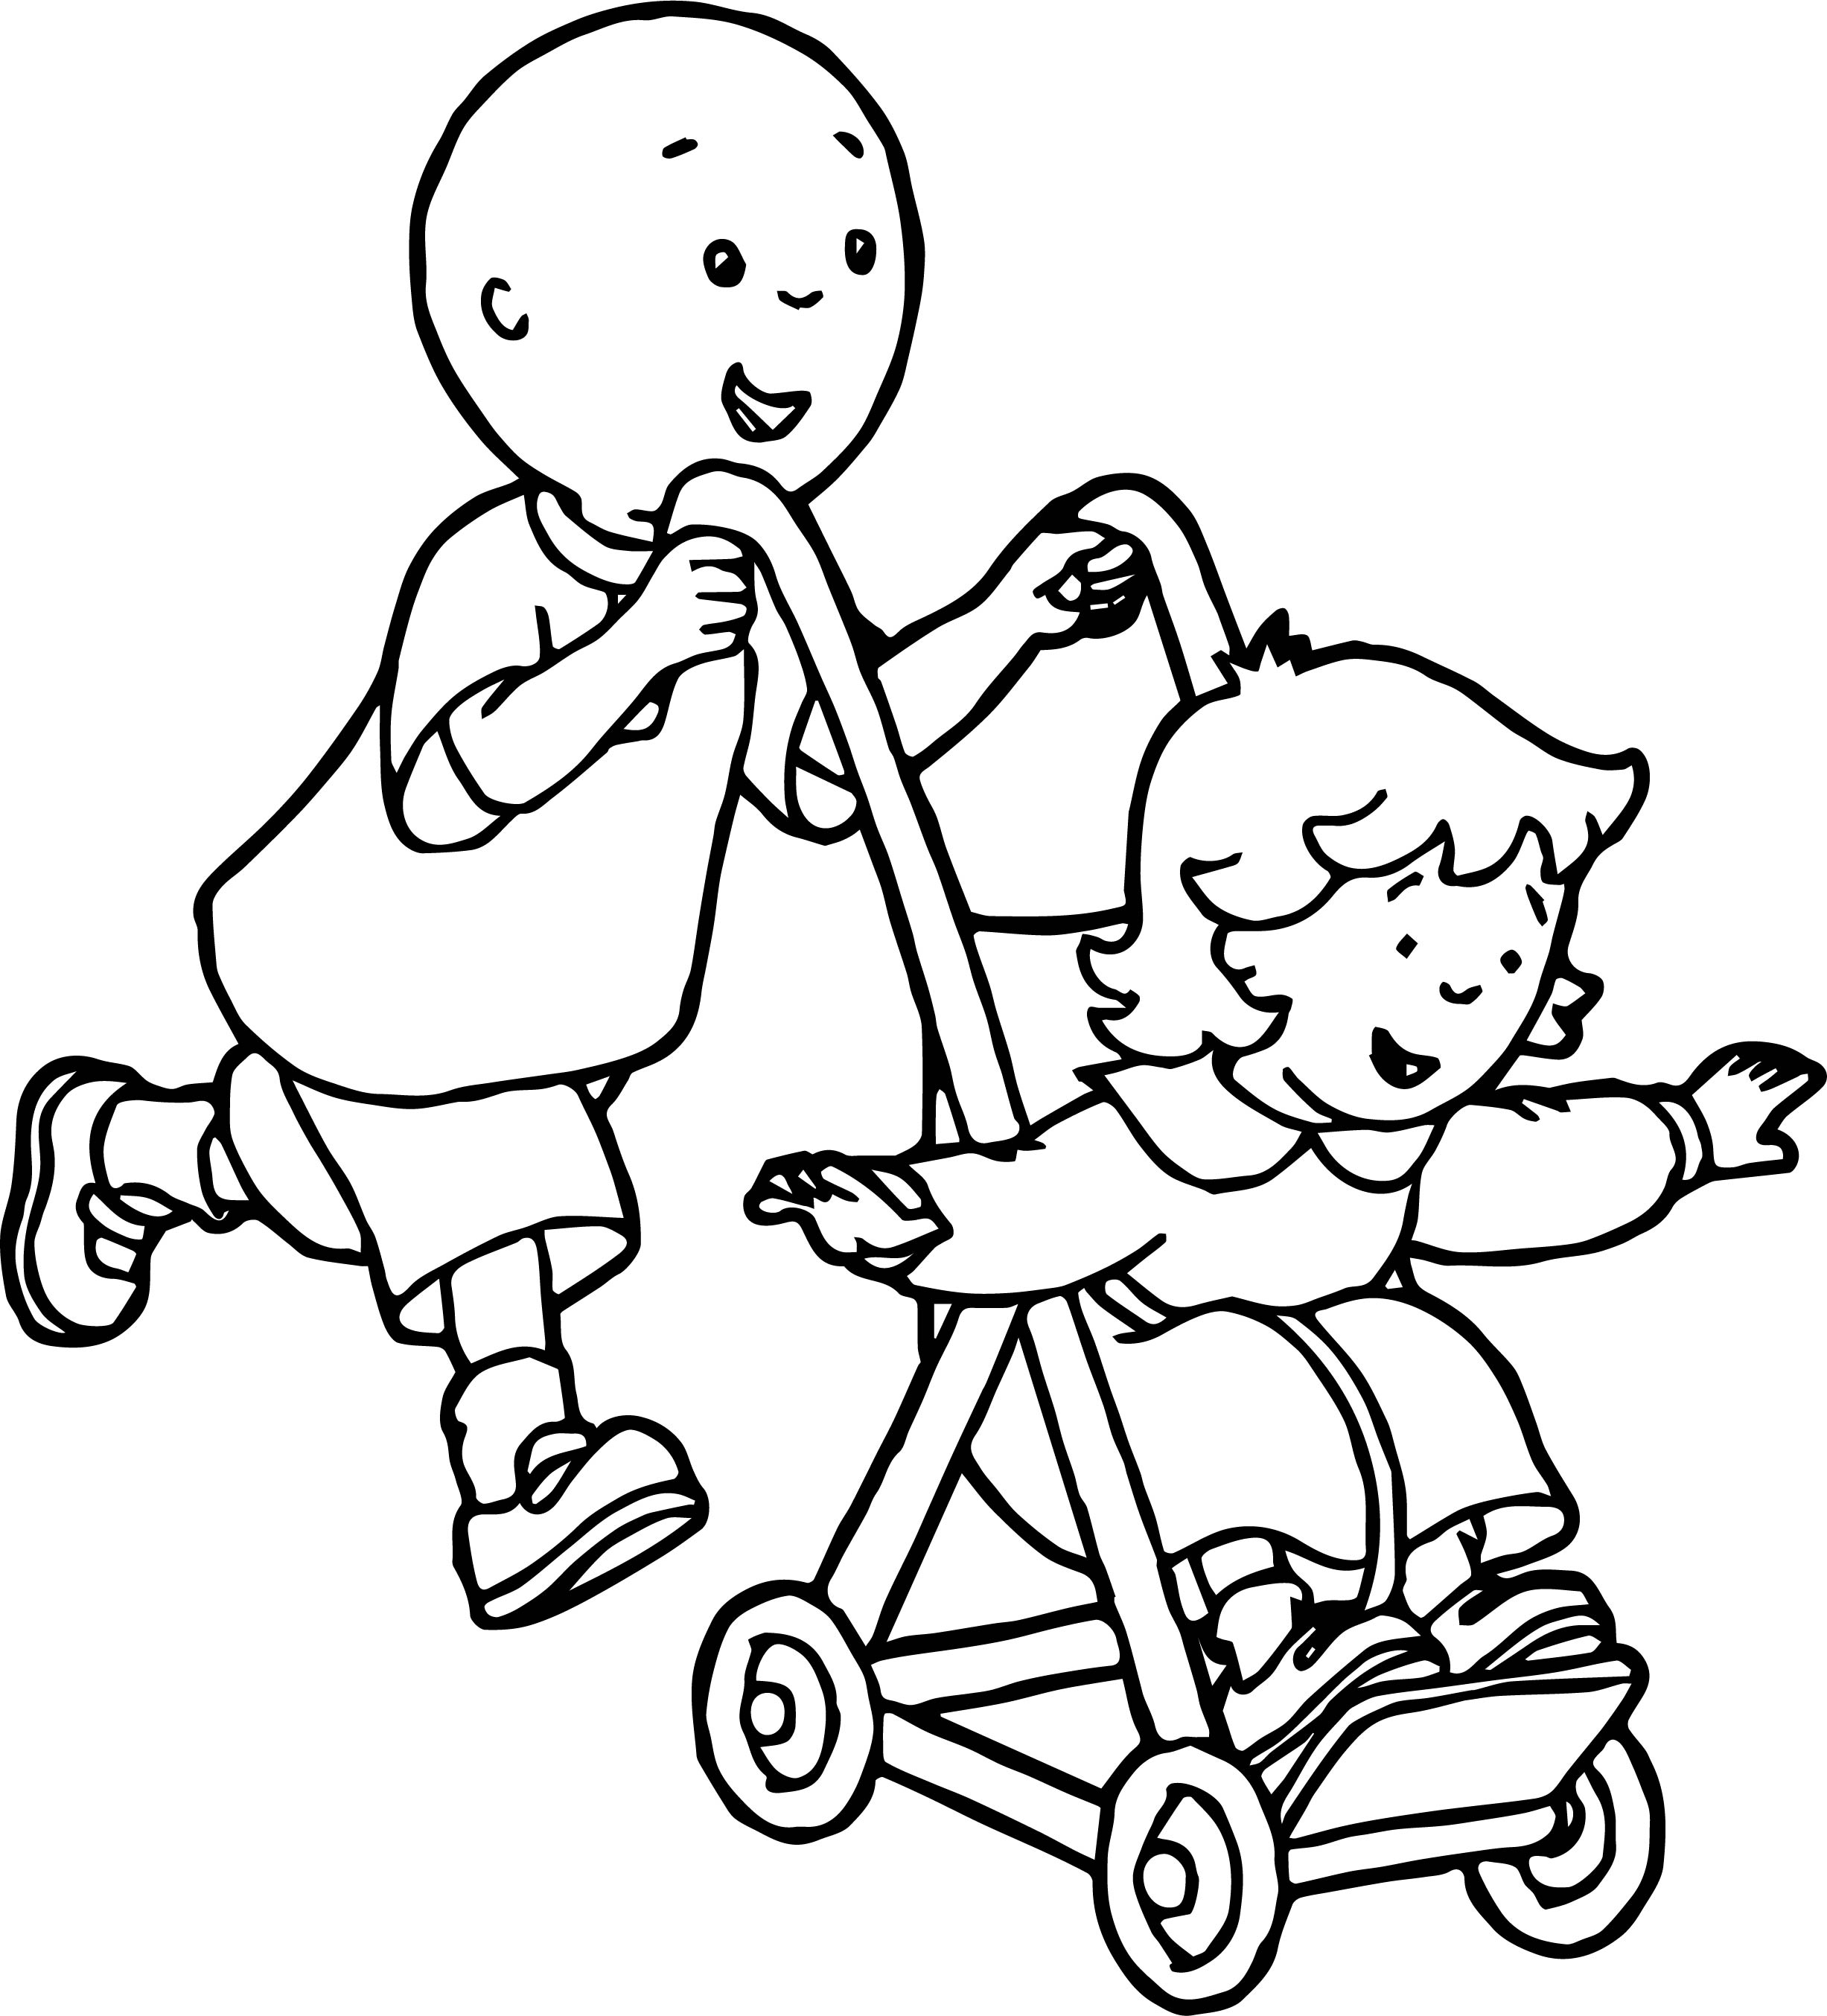 Coloring pages caillou - Caillou Pushing Rosie In Stroller Caillou Coloring Page